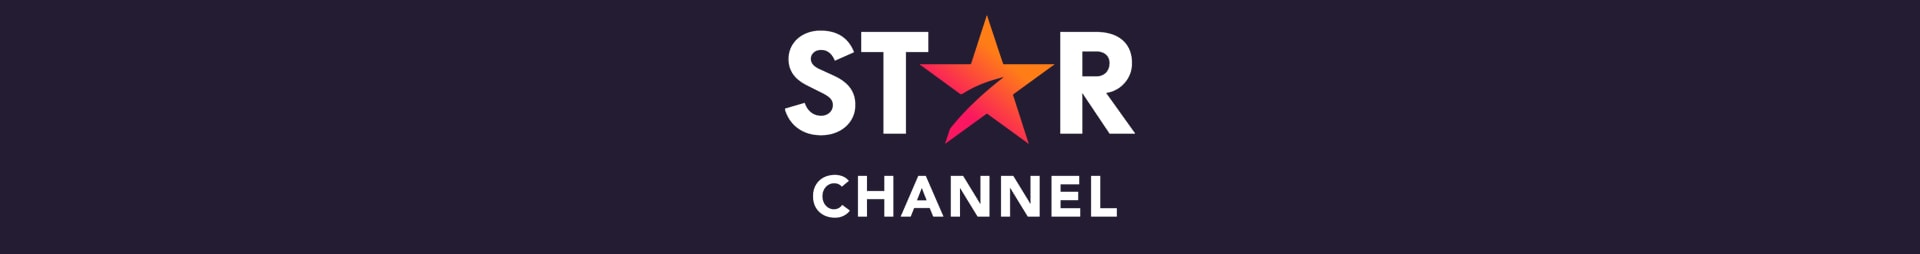 Top_StarChannel_HP_lanzamiento